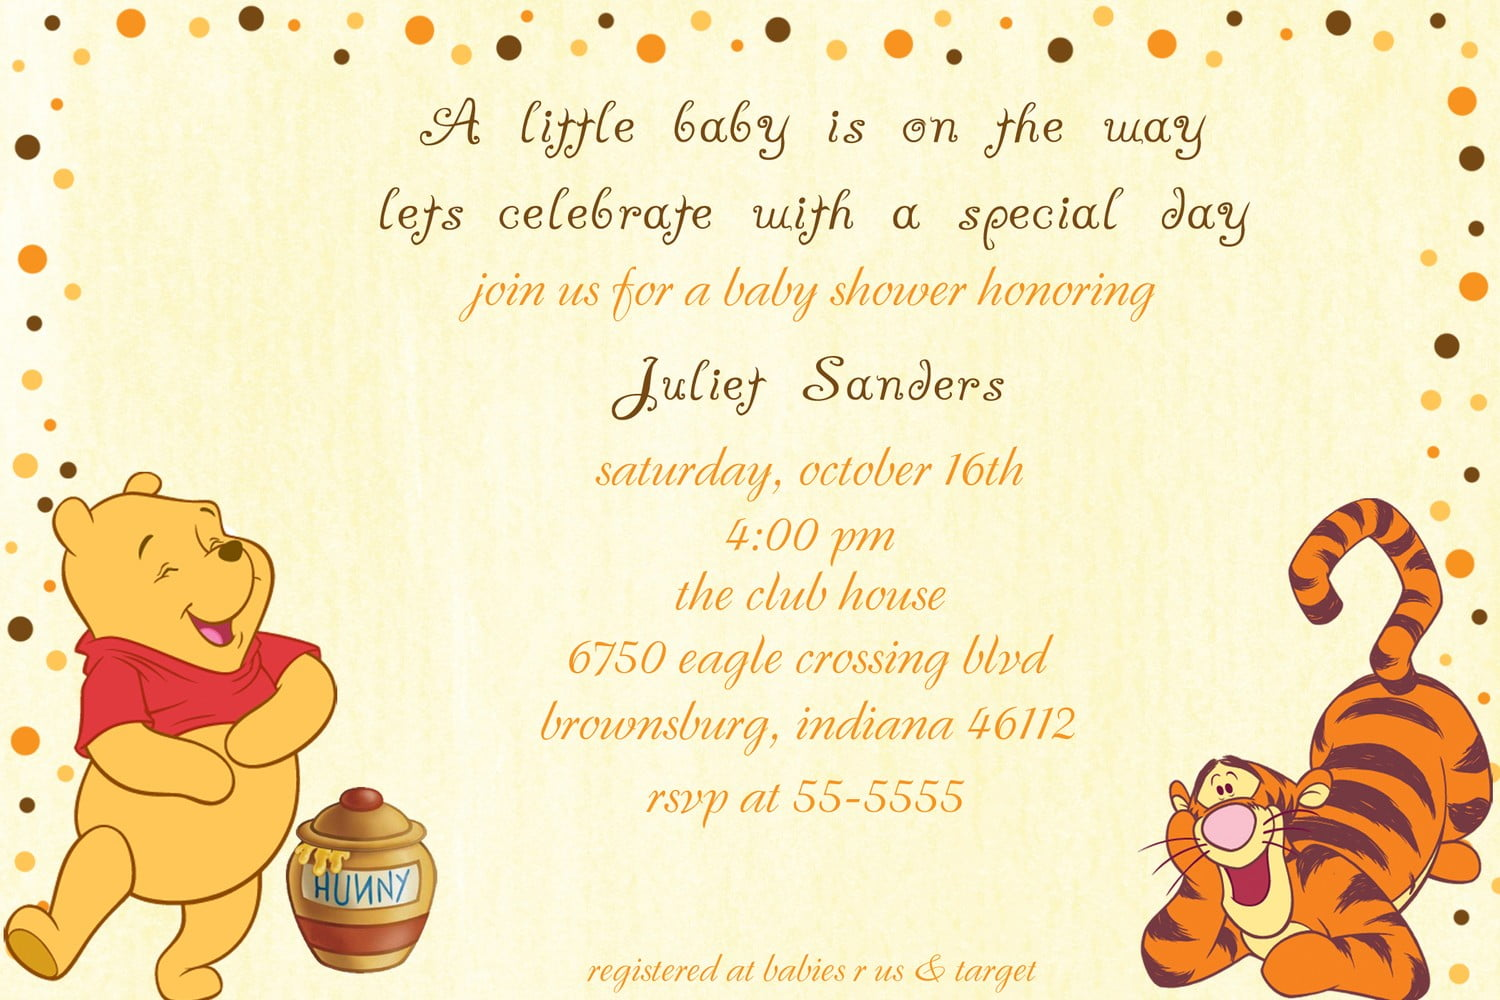 Classic Winnie the Pooh Baby Shower Invitations | FREE Printable ...